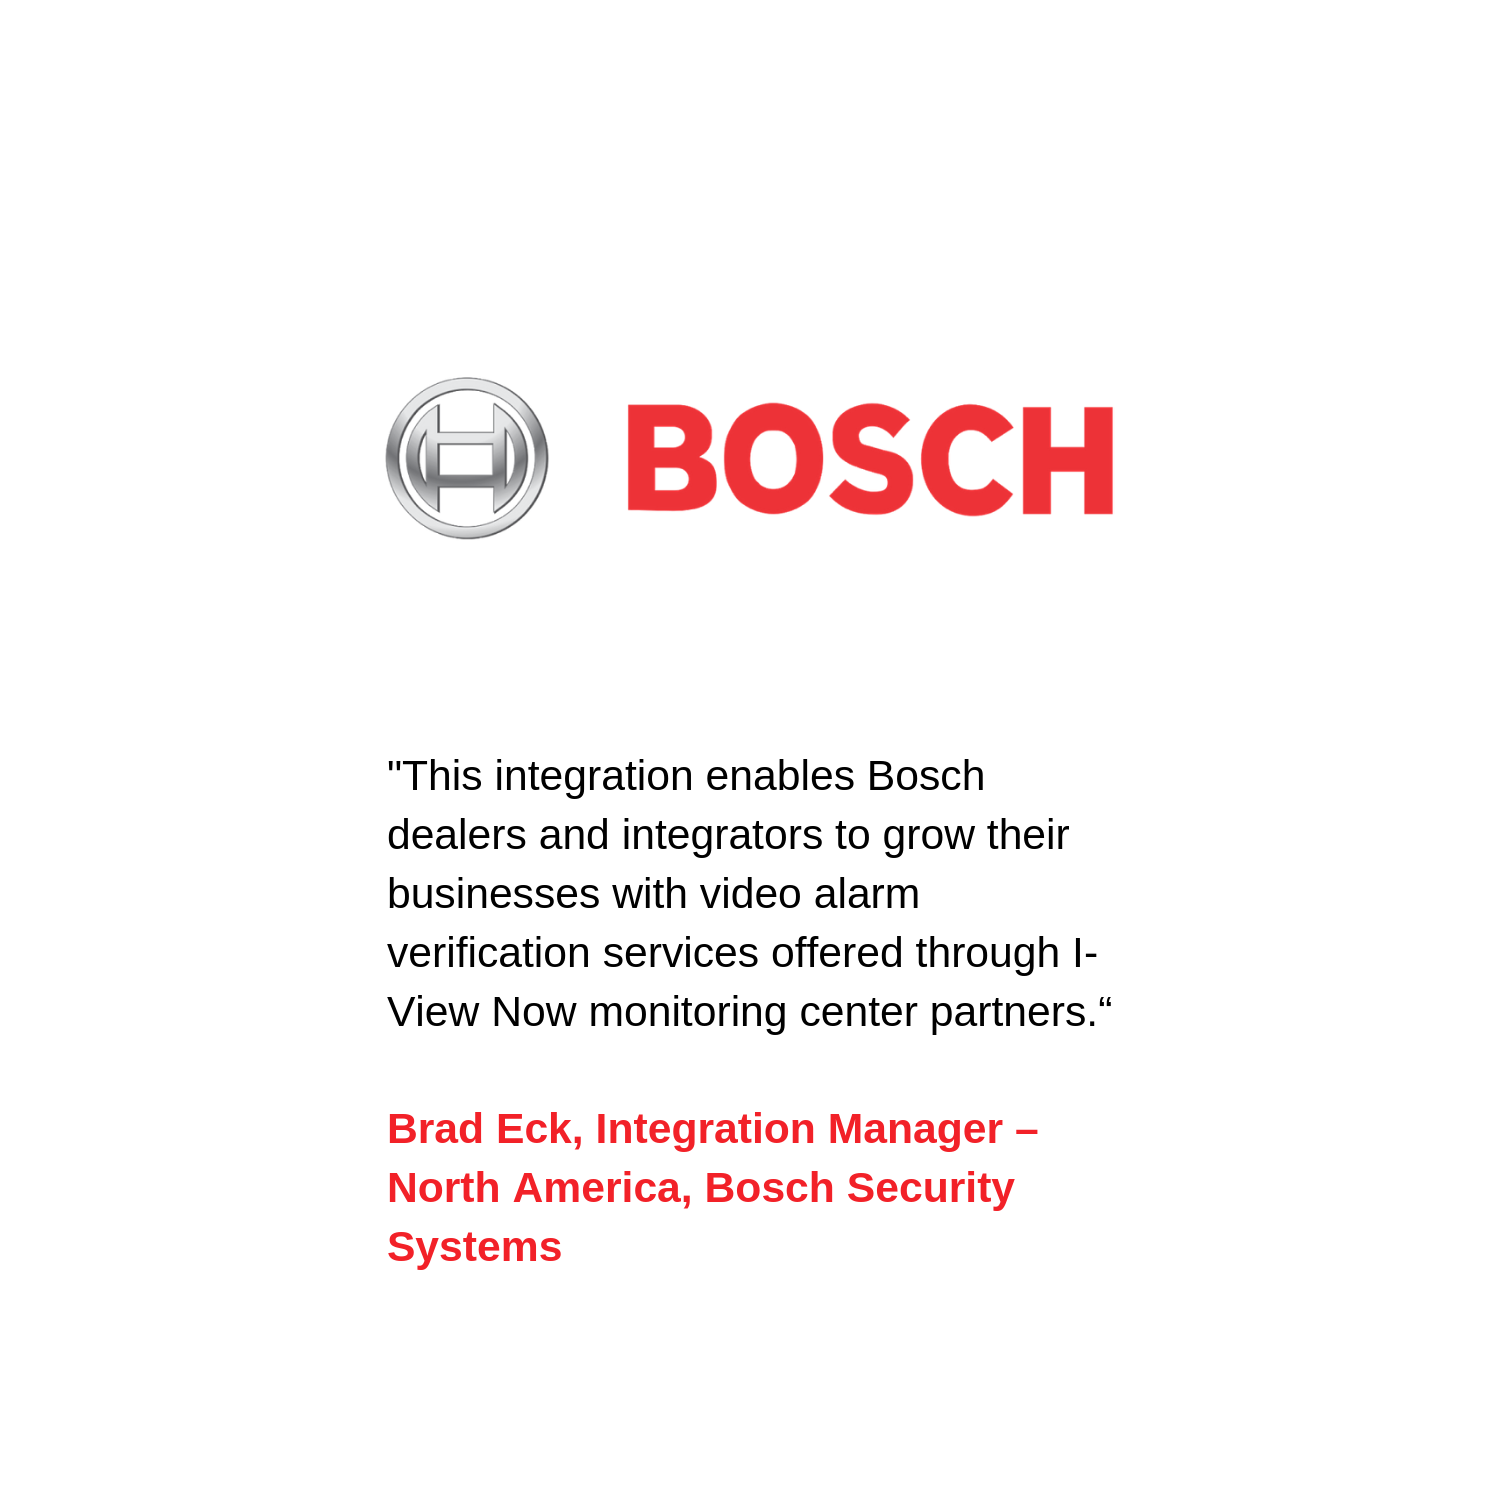 I-View Now - Bosch Security quote 1500x1500.png